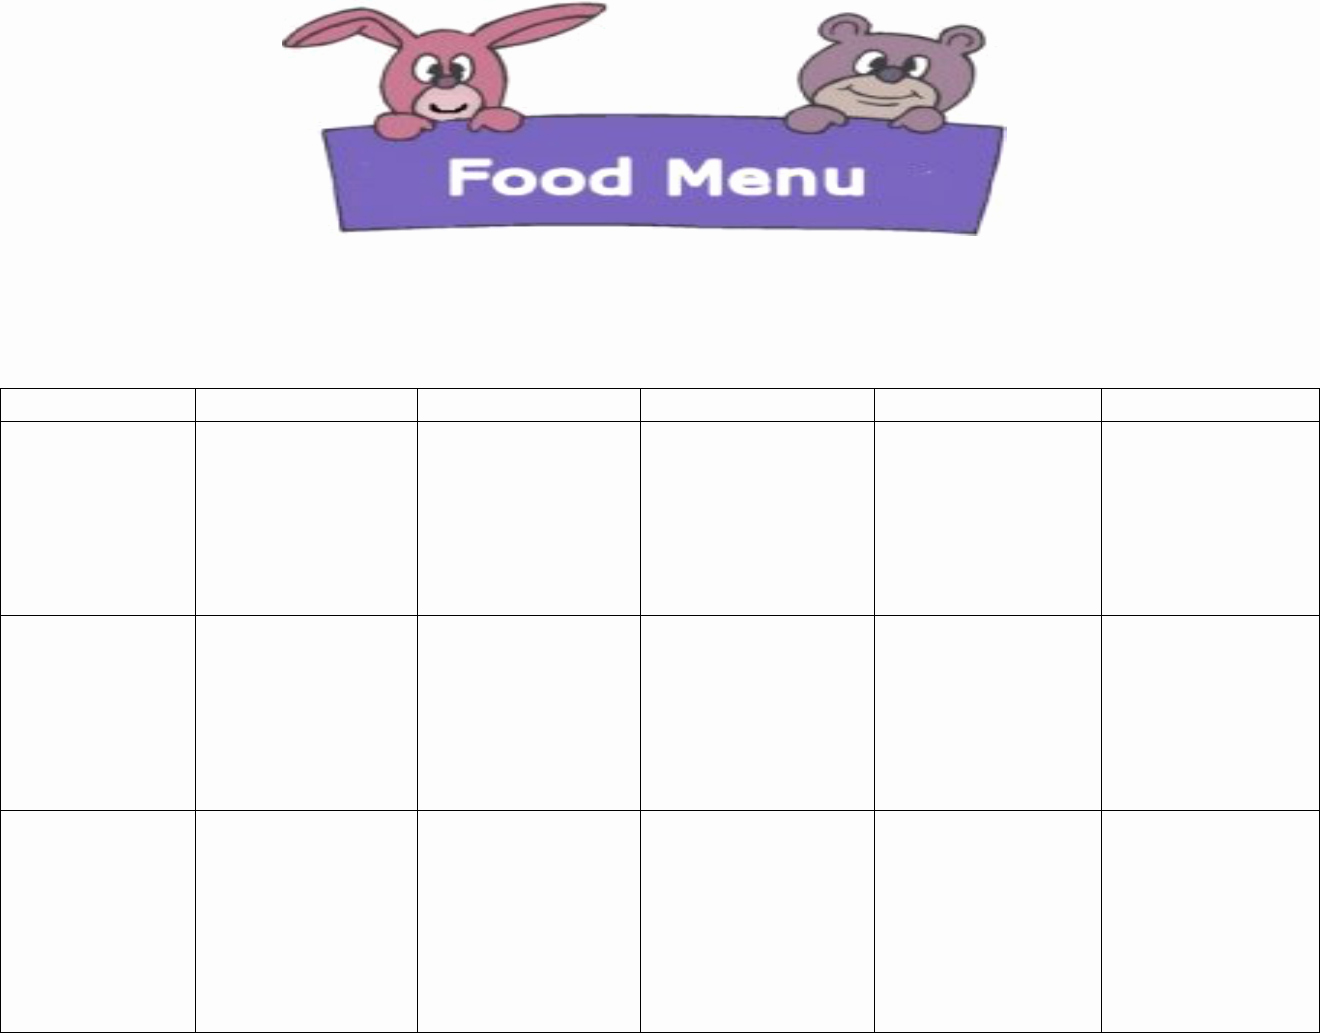 Daycare Menu Templates Free Download Luxury Daycare Food Menu Template In Word and Pdf formats